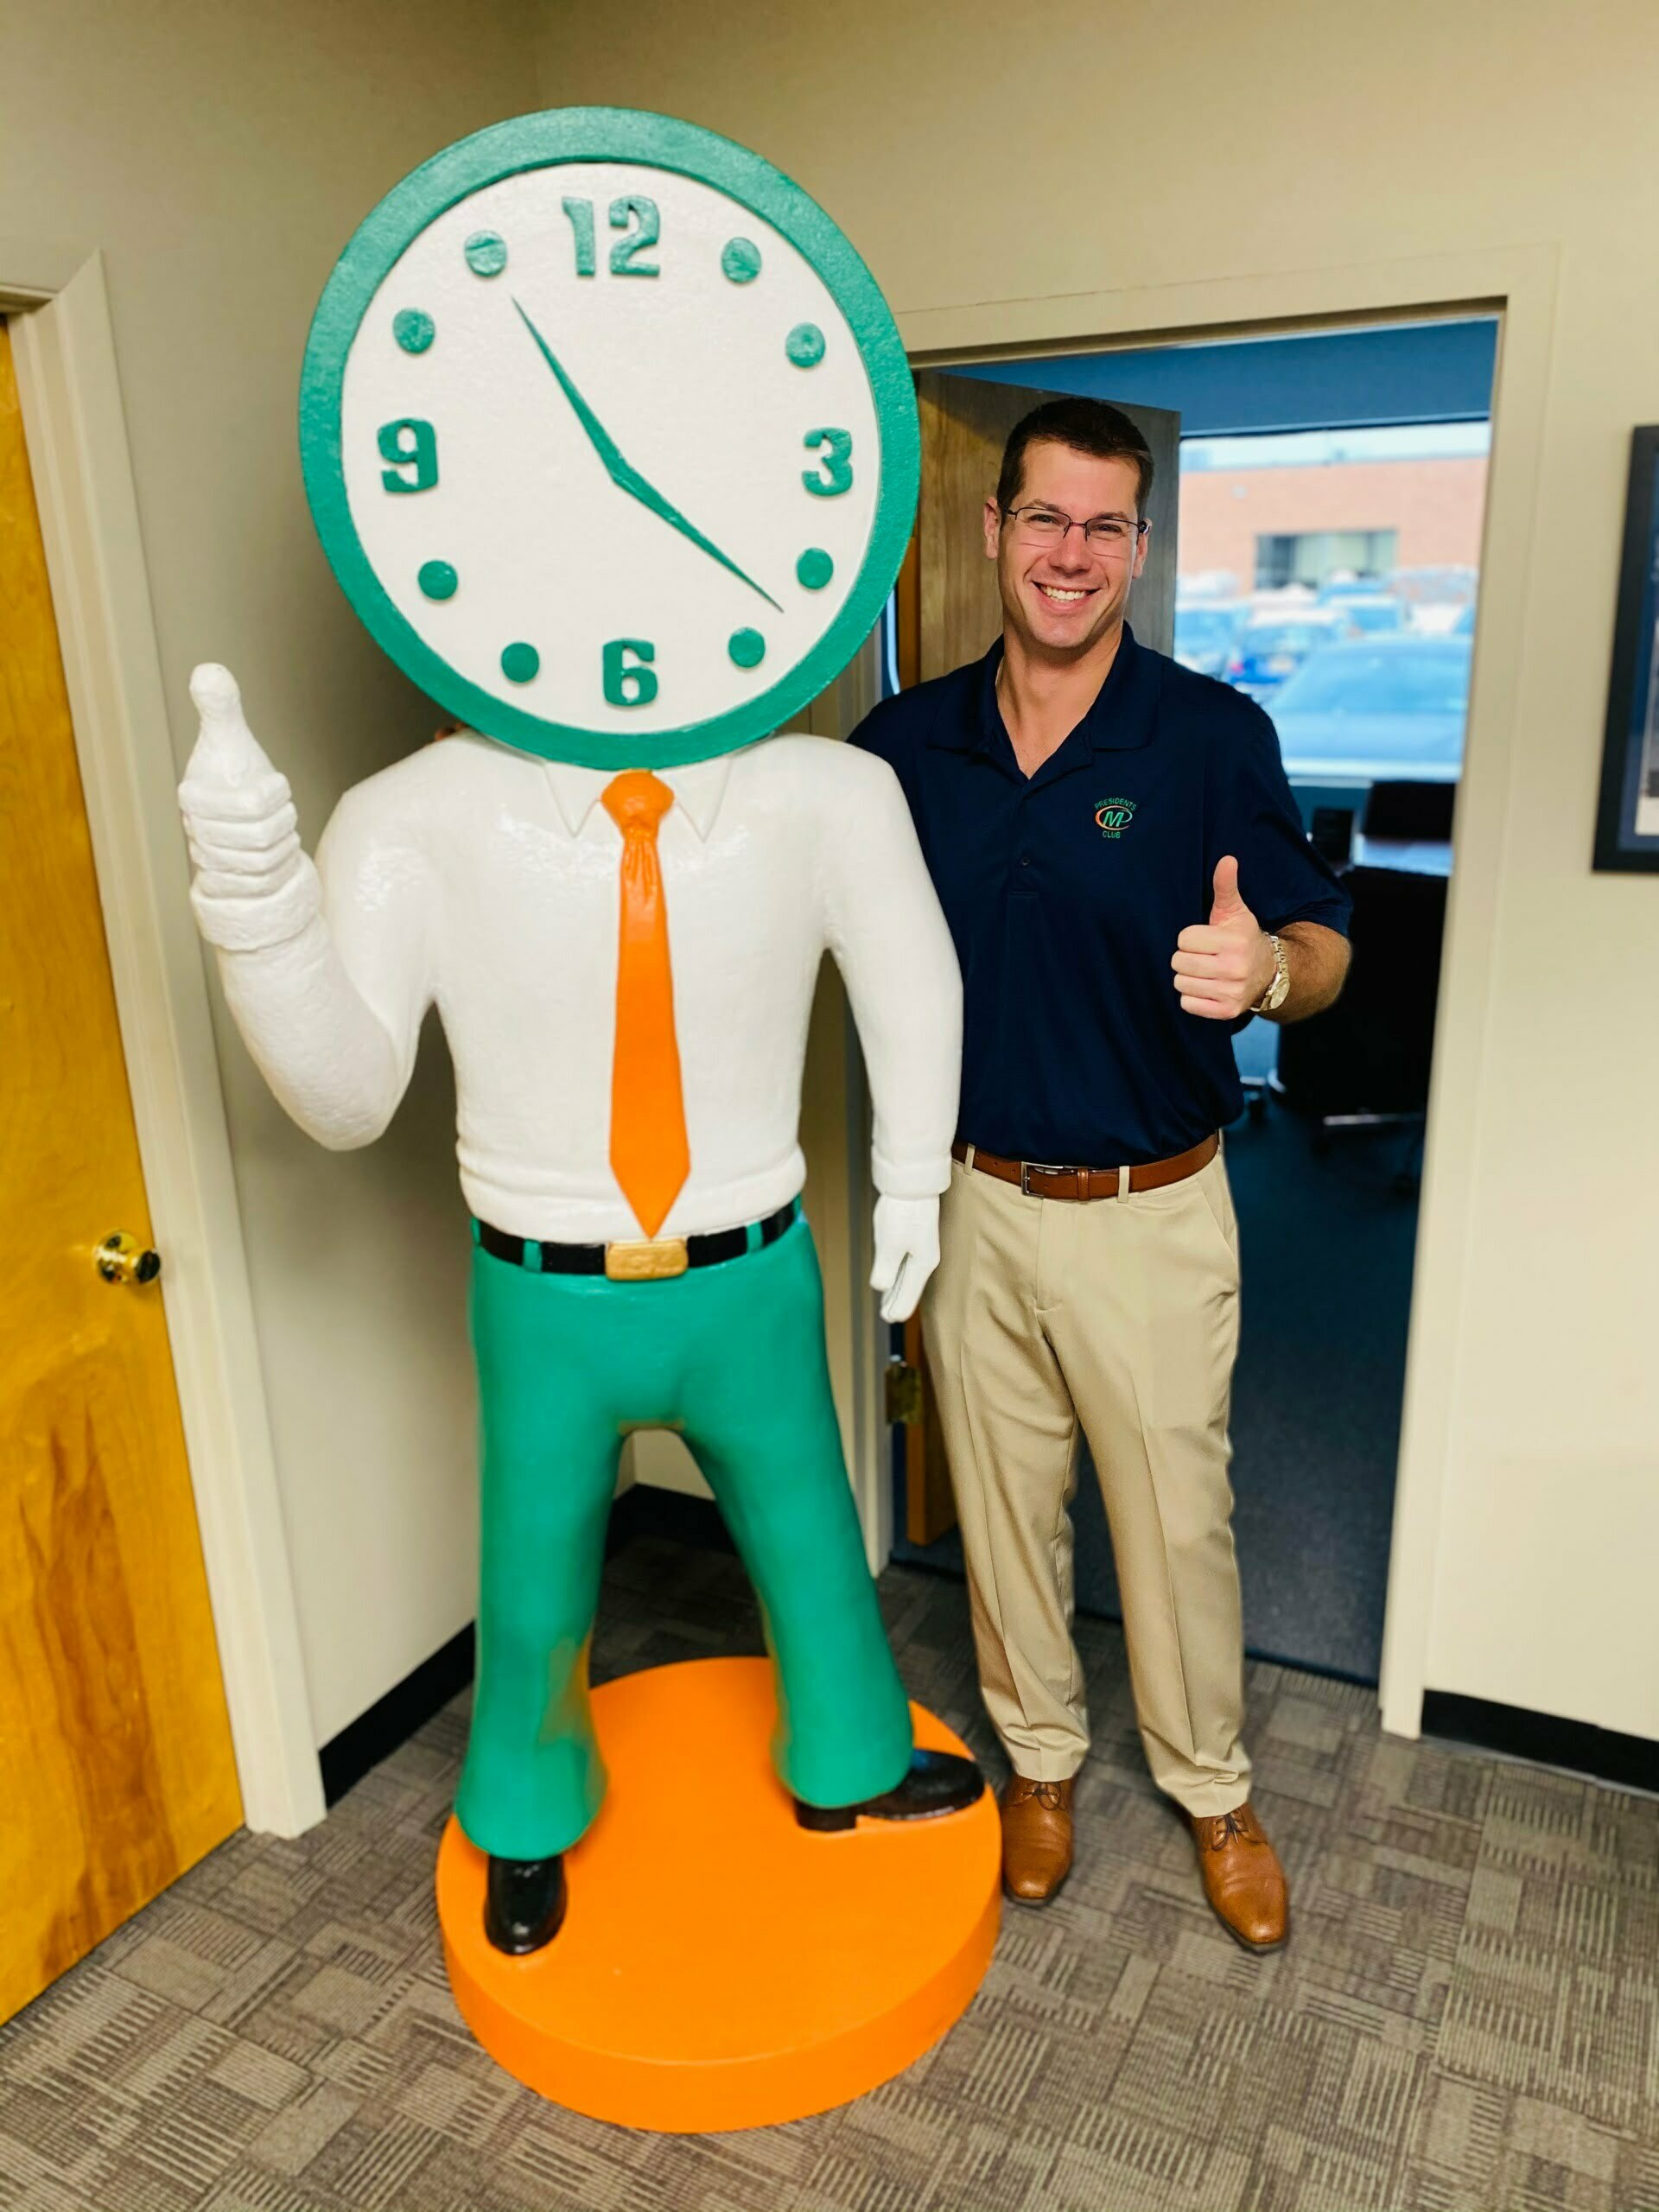 Nick Titus with Giant Minute Man in Farmingdale NY